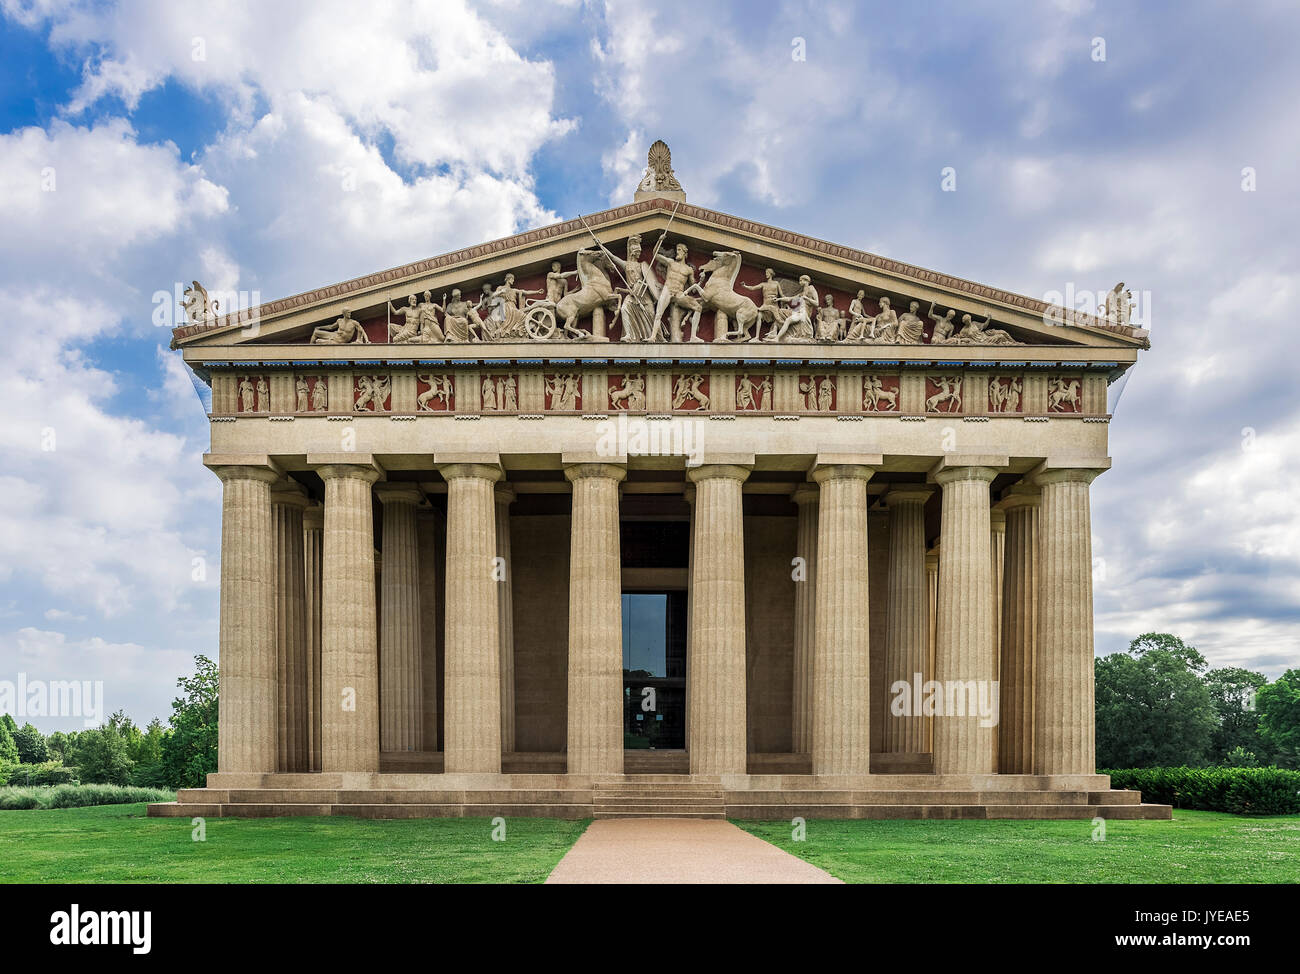 The Parthenon is  the centerpiece of Centennial Park, Nashville, Tennessee, USA. - Stock Image